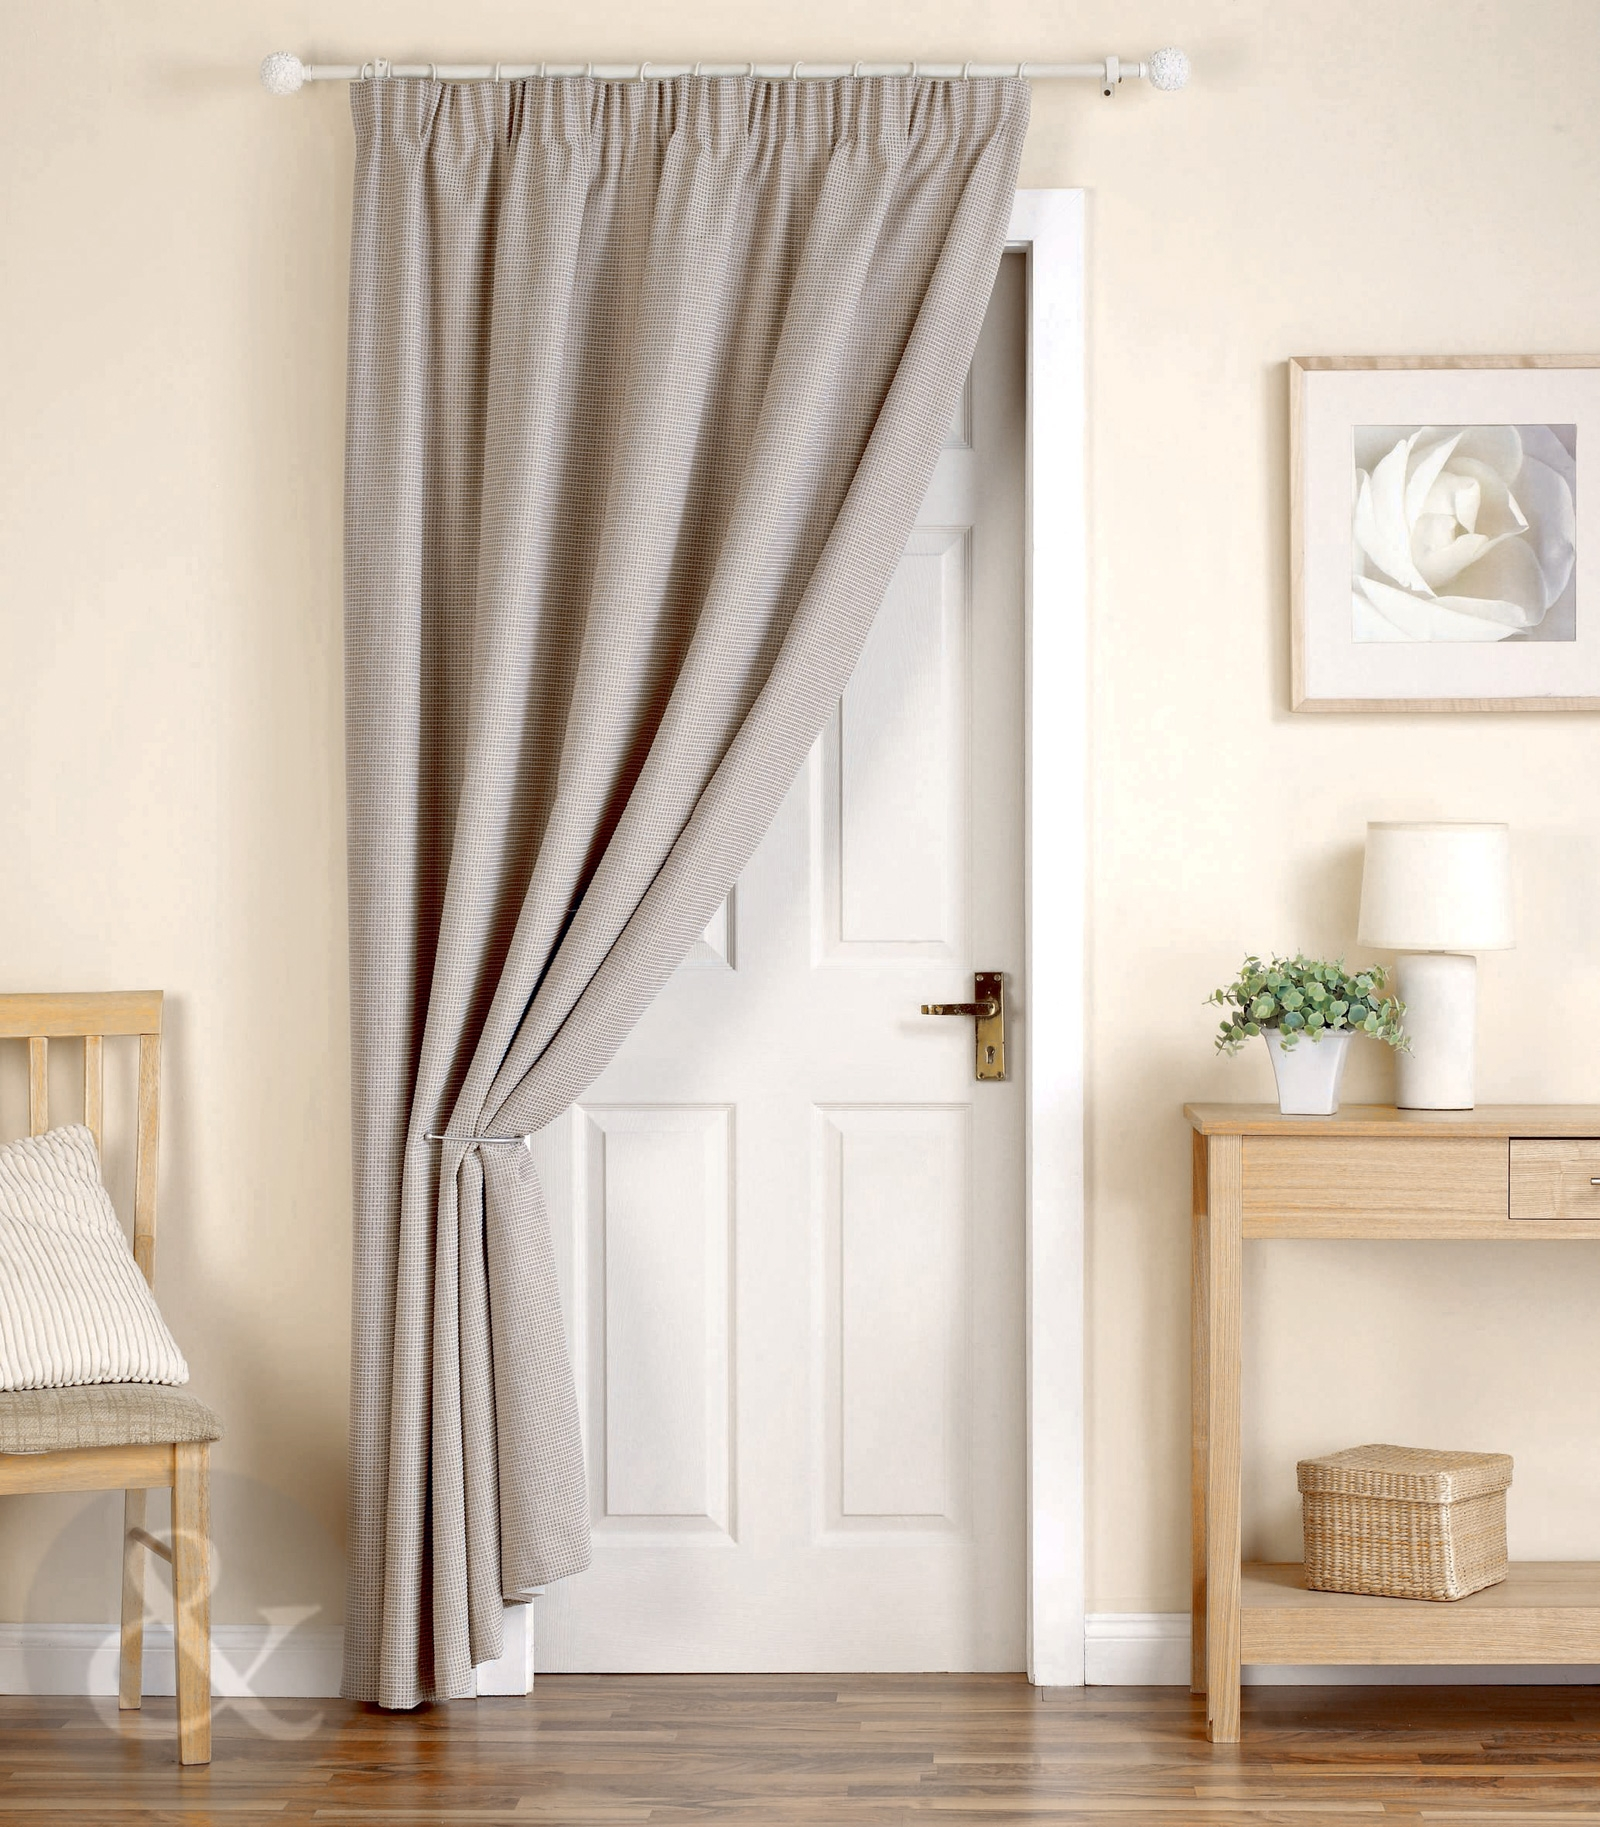 Heavy Thermal Curtains Curtain White Thick Curtains 6 Of 15 Photos